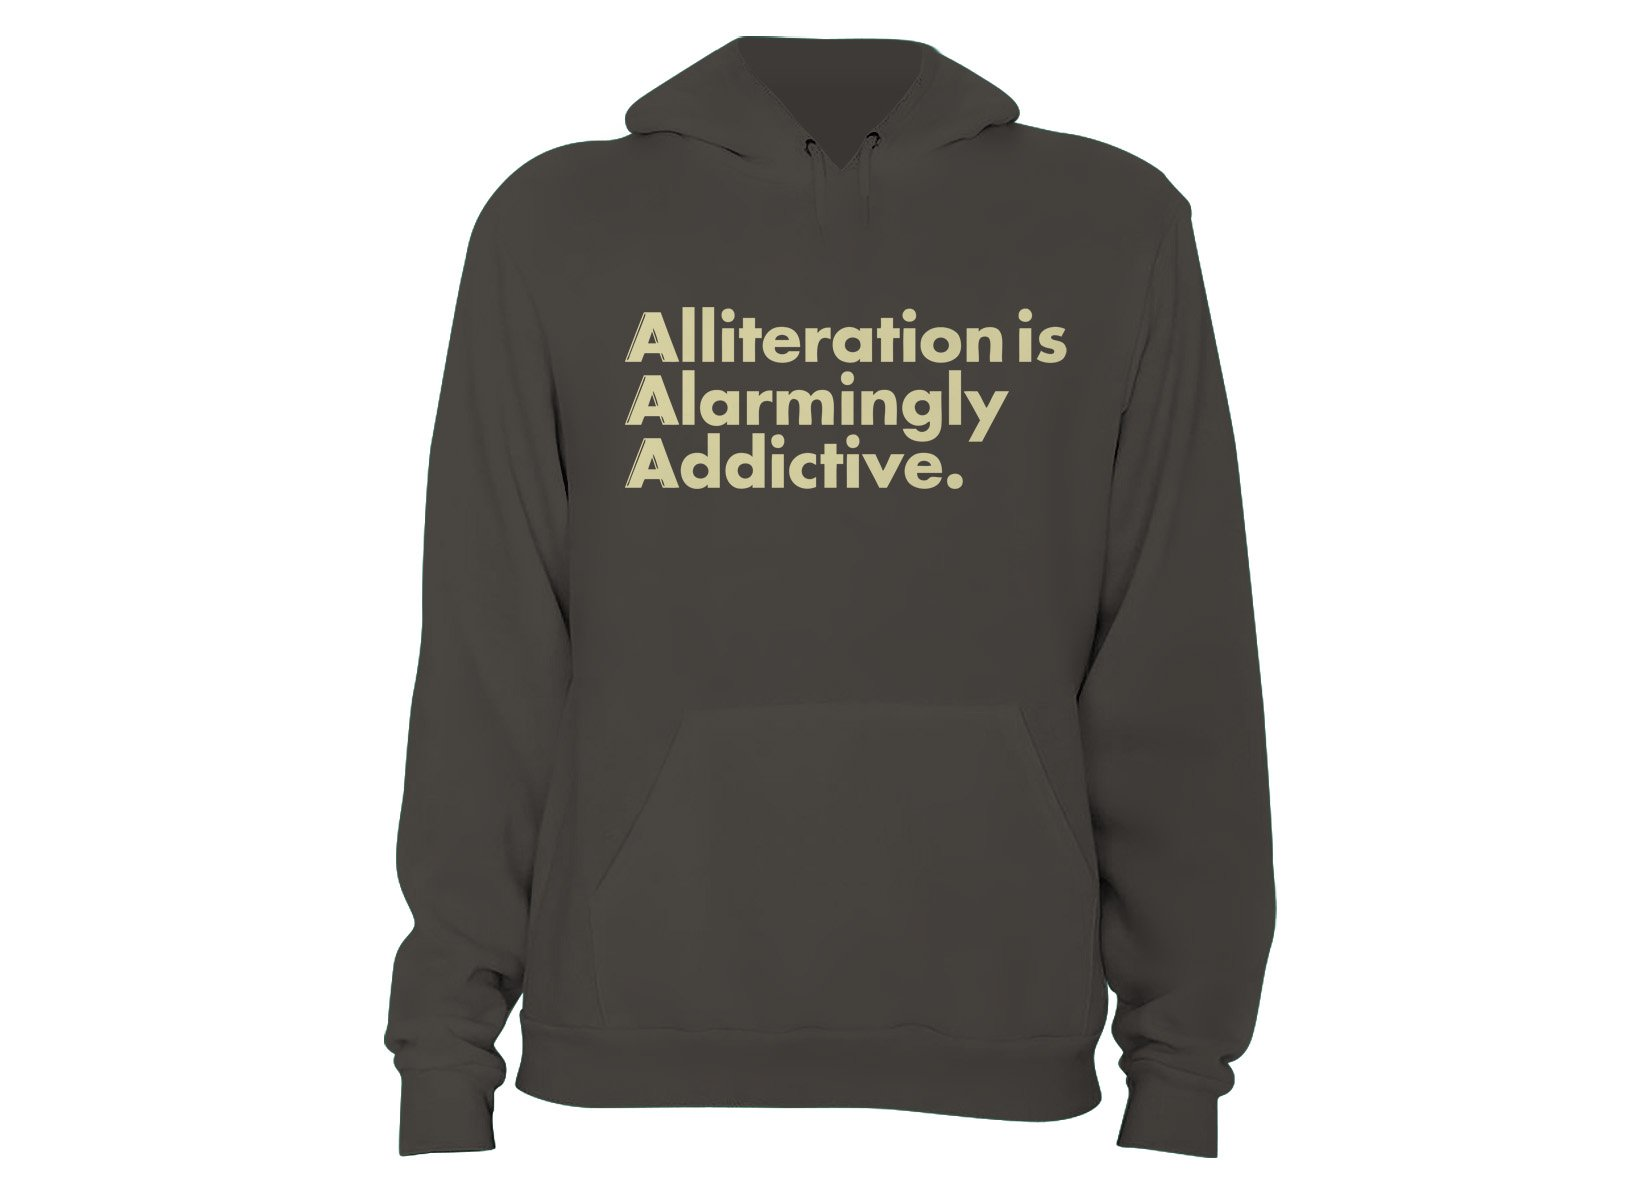 Alliteration Is Alarmingly Addictive on Hoodie